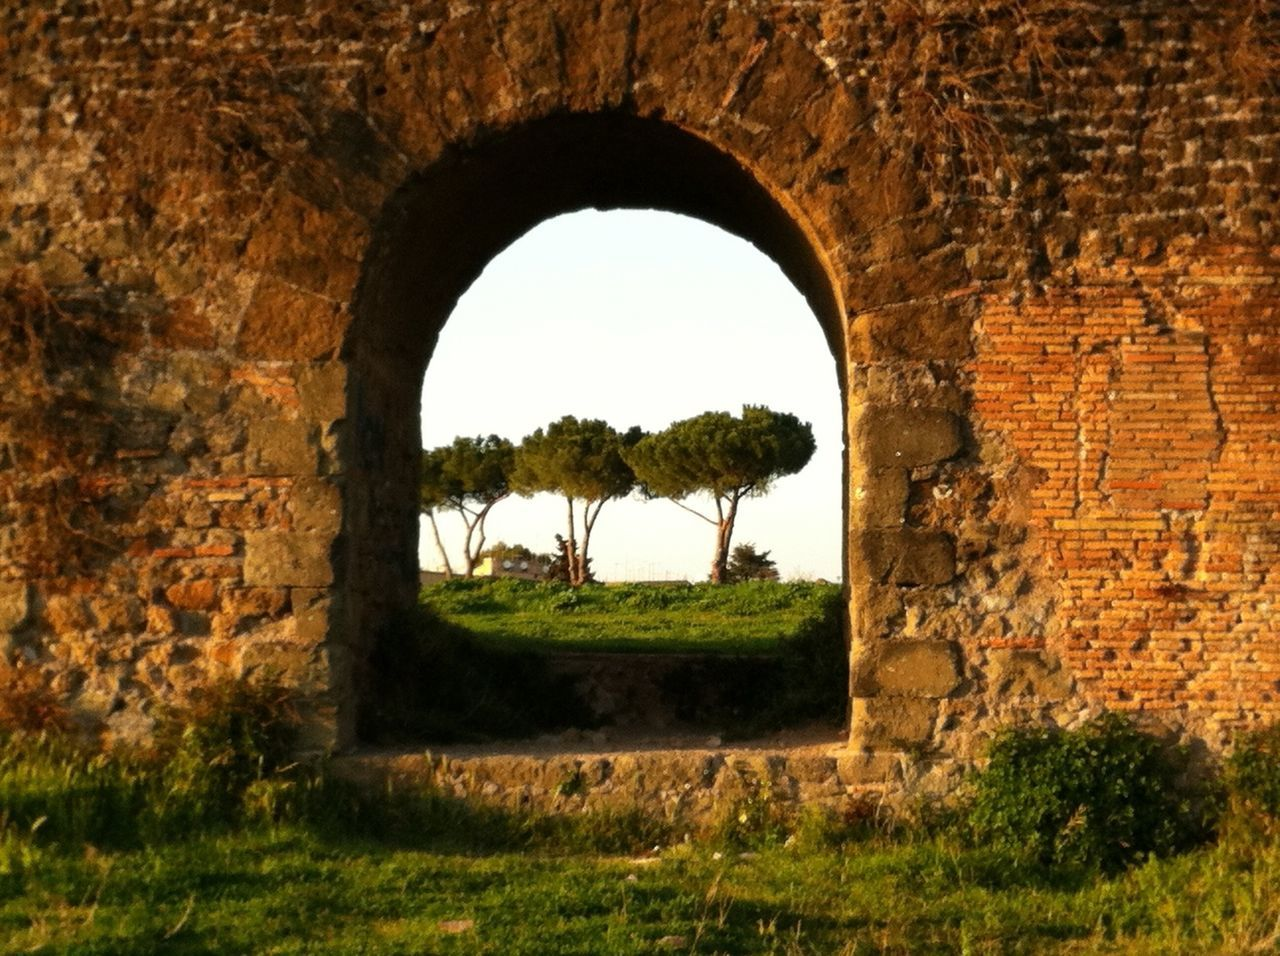 Ancient Civilization Aqueduct Arch Branch Day Historic History Italy Old Outdoors Park Pinetrees Rome Ruined The Way Forward Tree Tree Trunk Treelined Woods